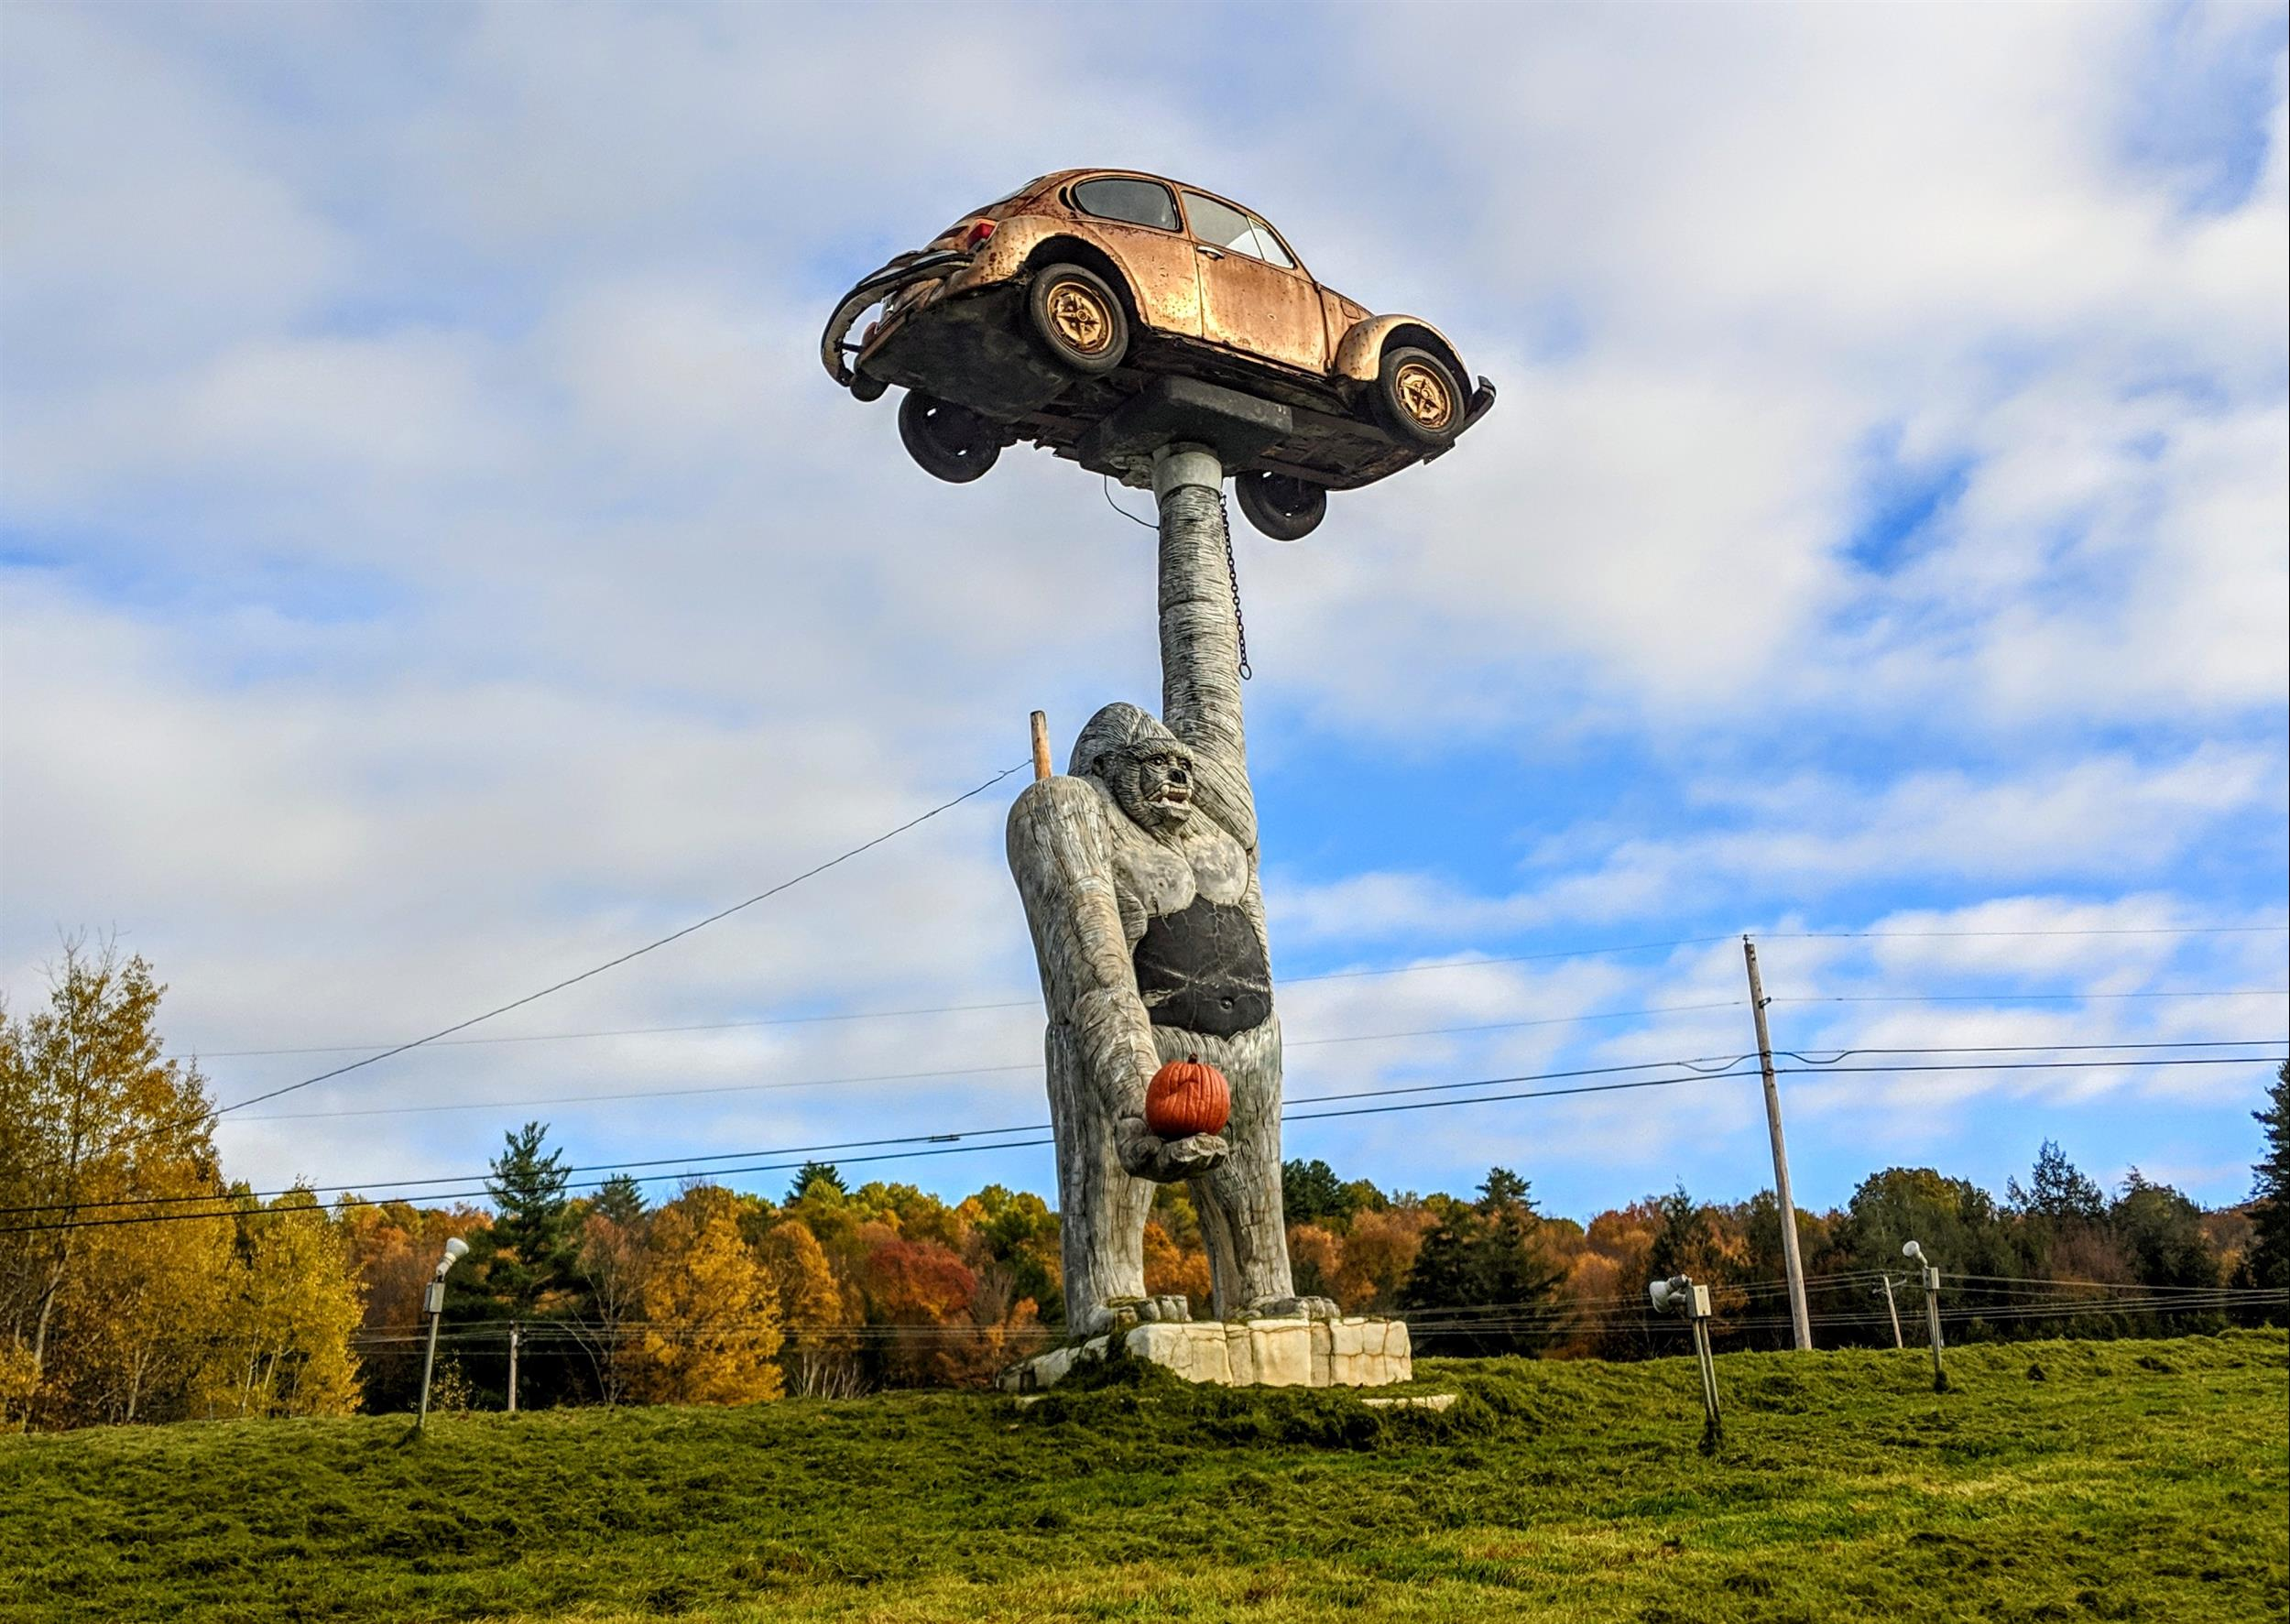 Gorilla Holding a VW Beetle (Statue)